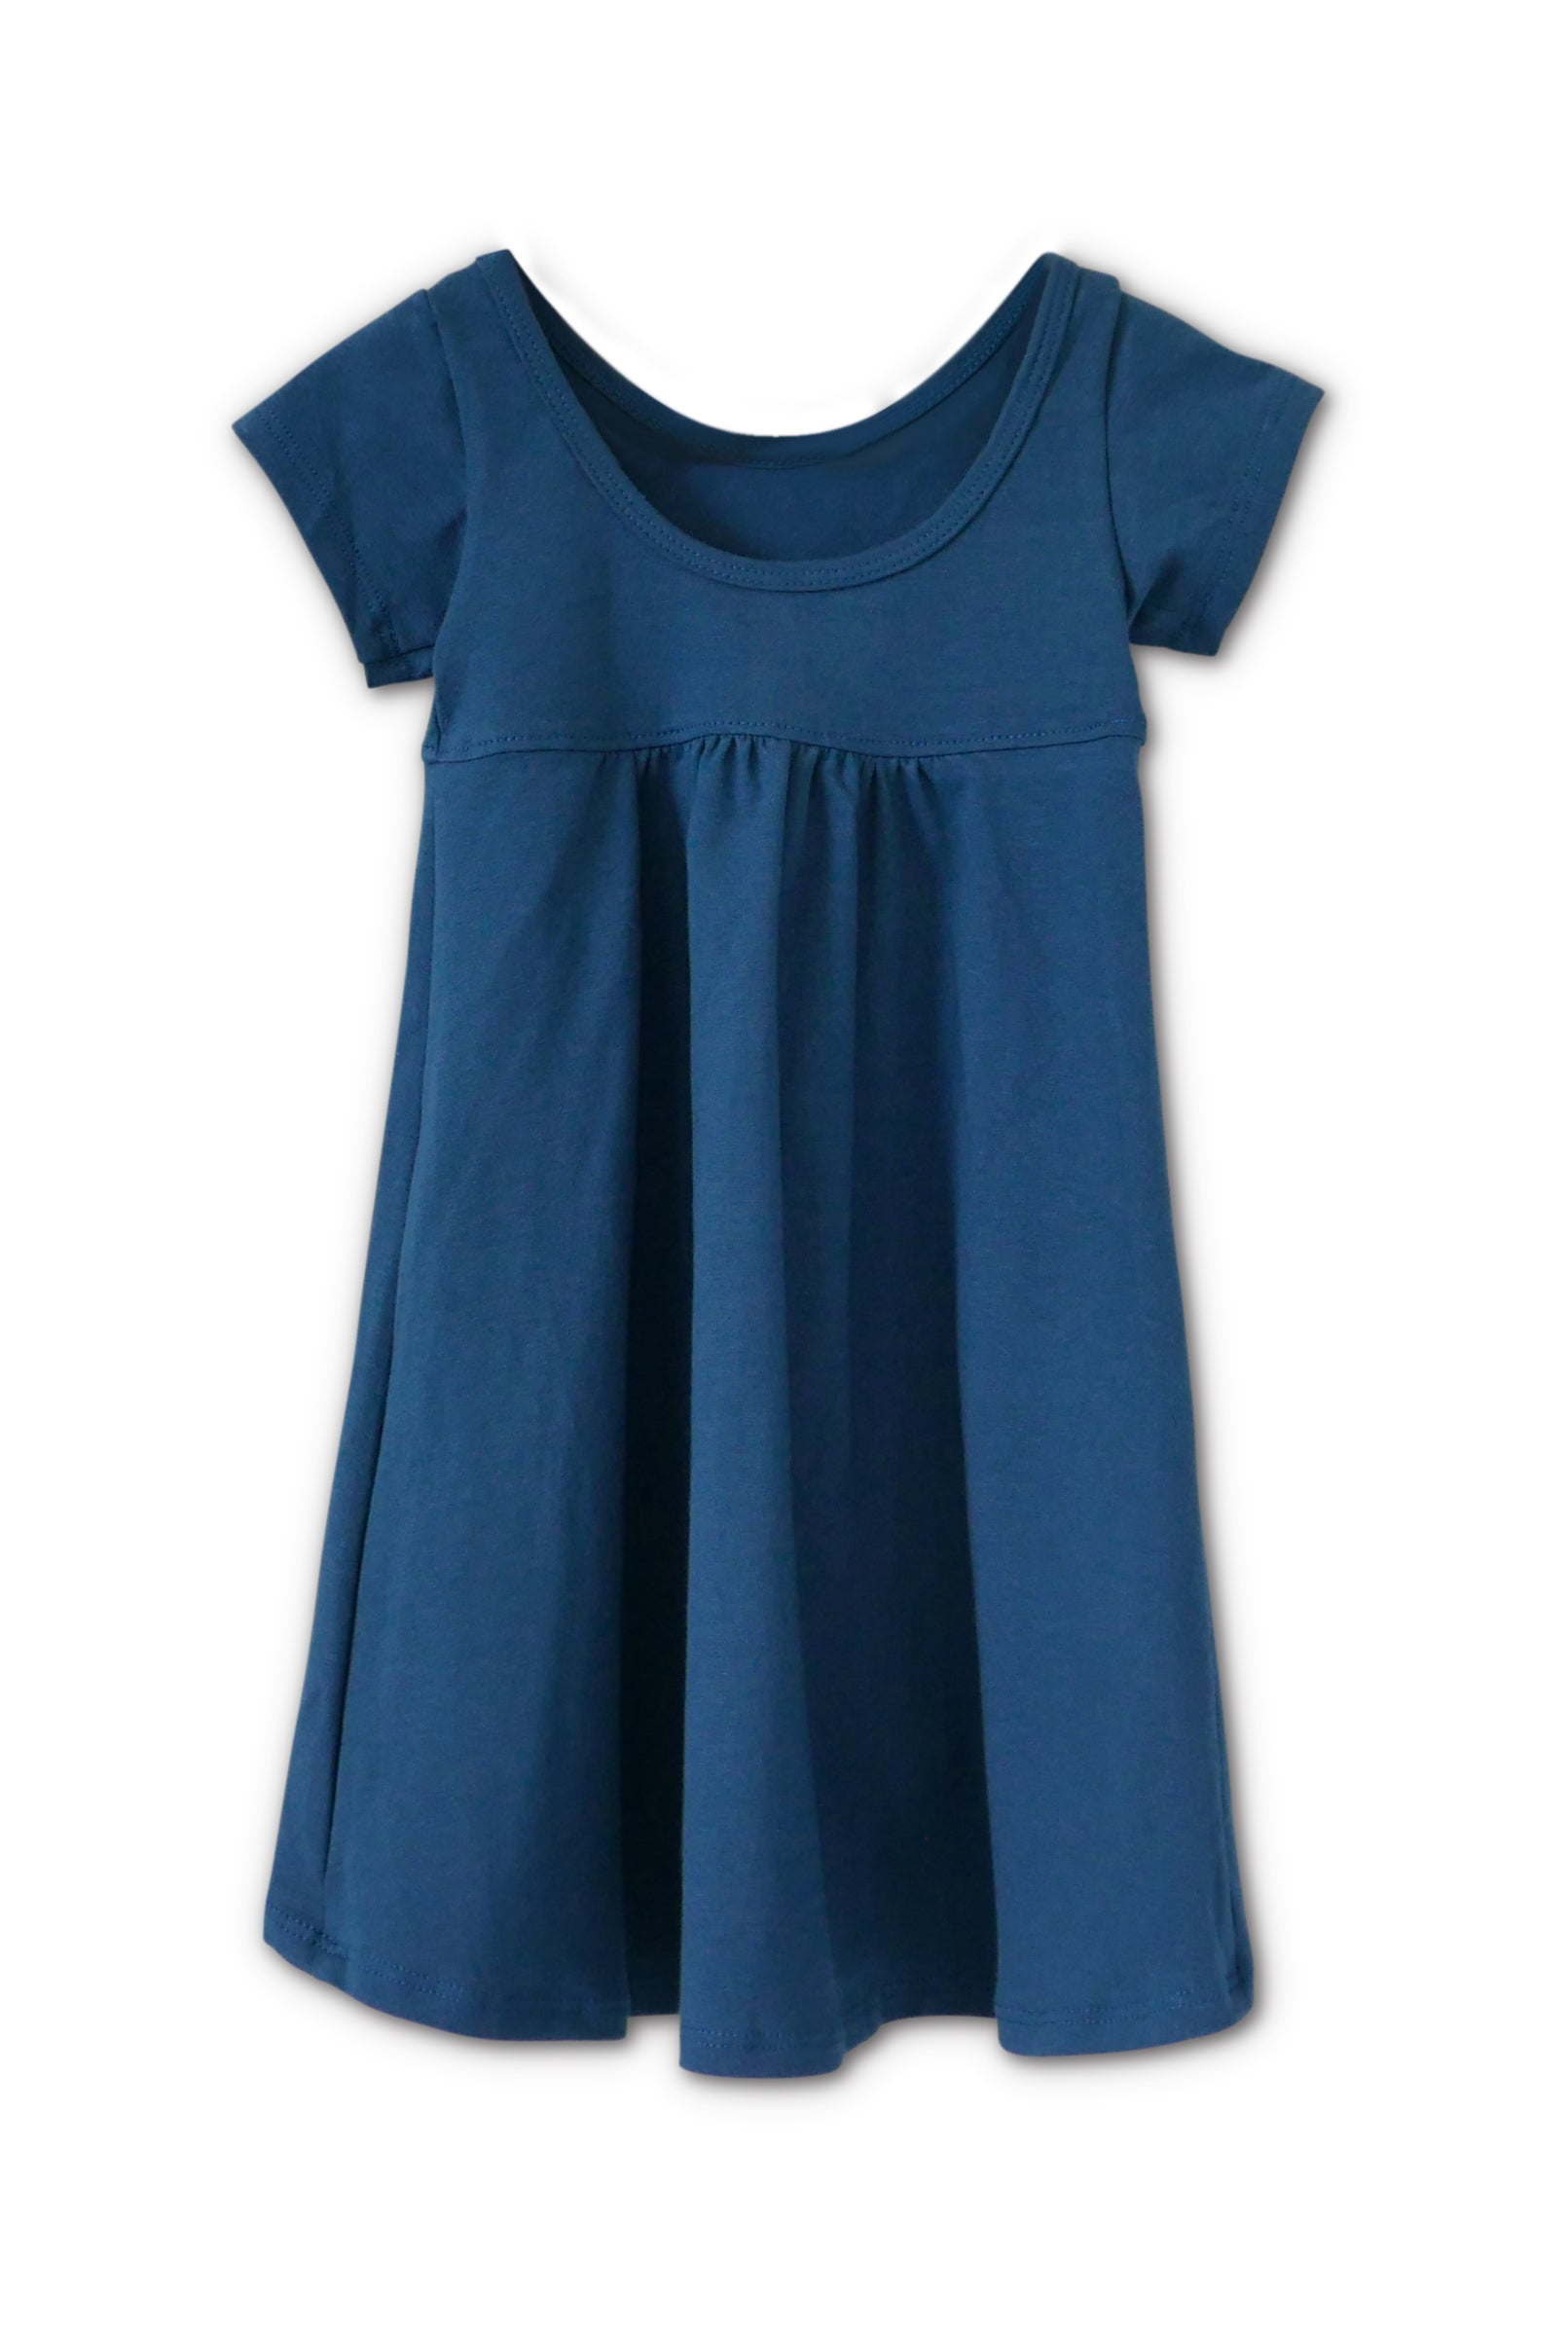 Sailor Blue - Everyday Dress